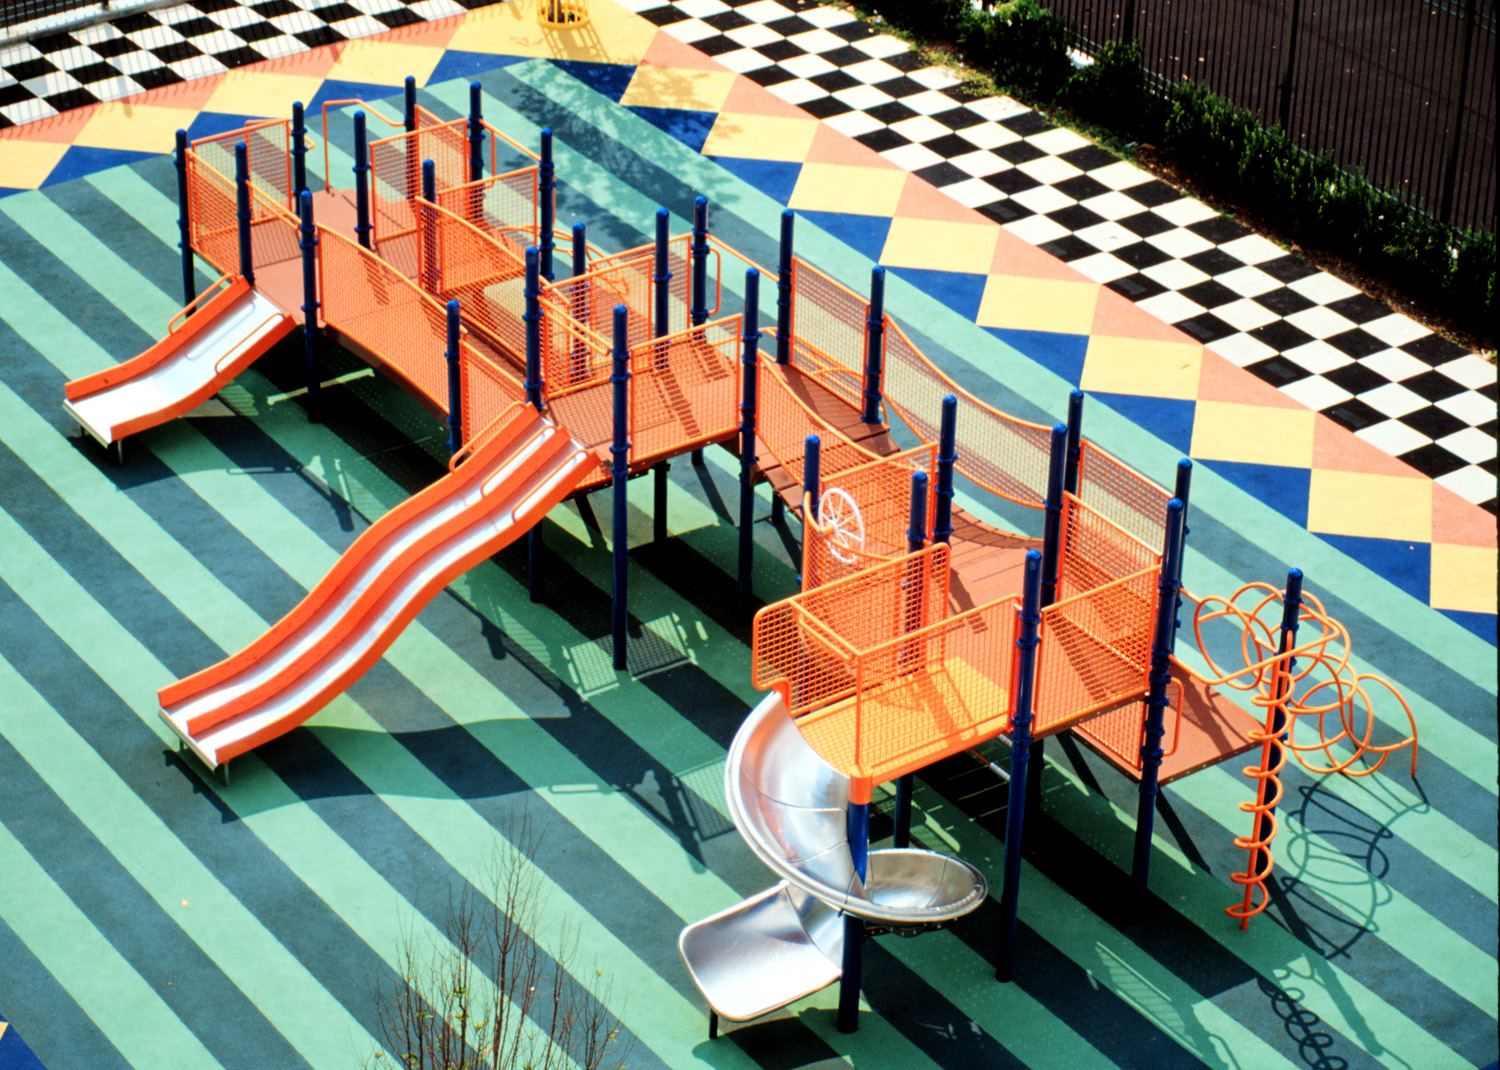 Vintage 1980s PipeLine playground by Columbia Cascade.  Ready for a comeback?